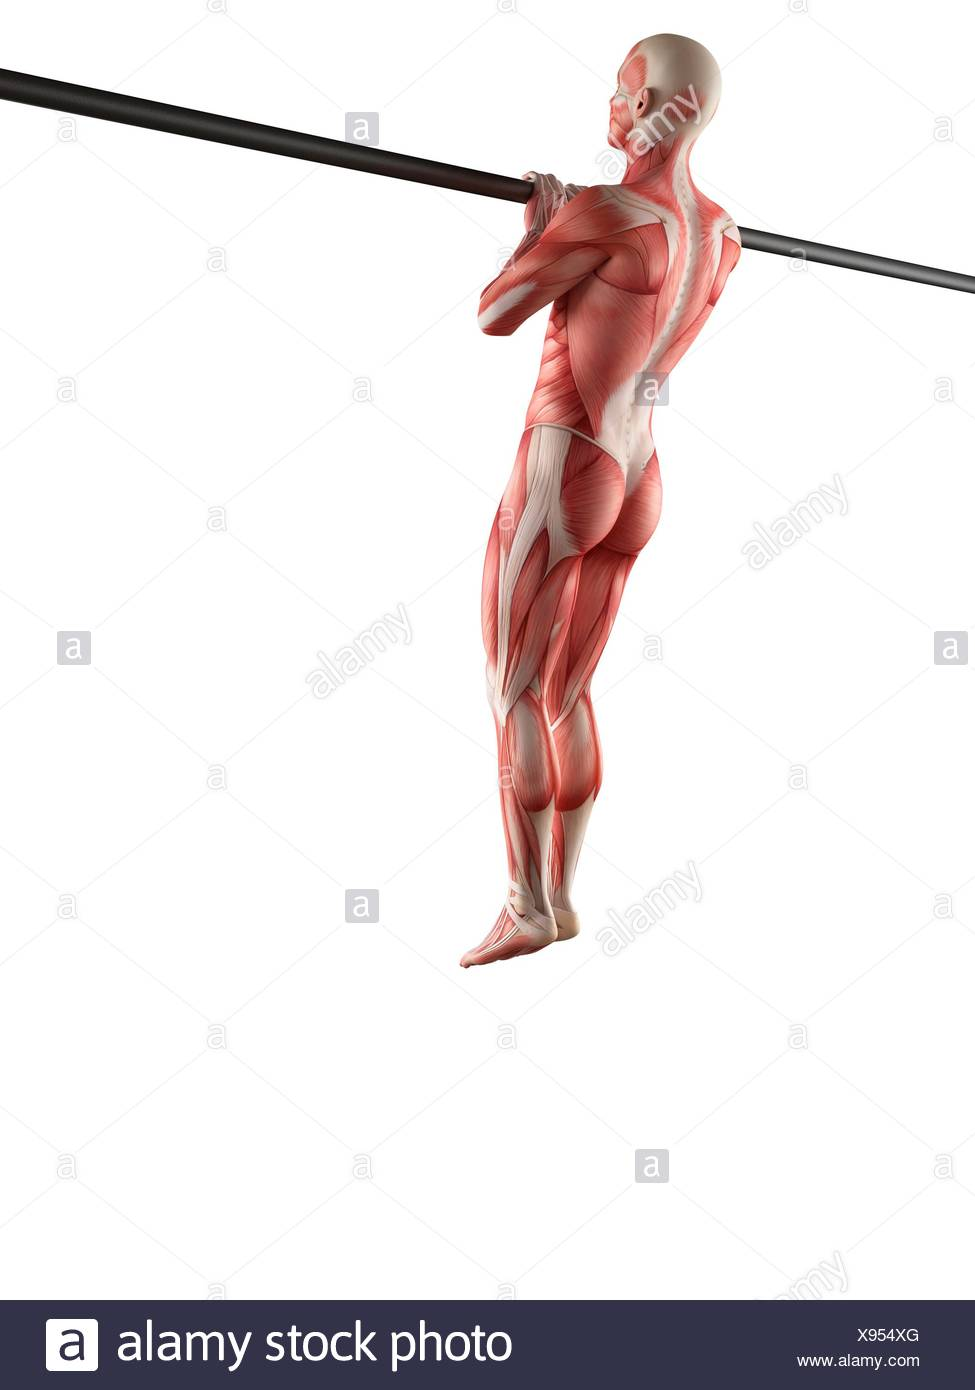 Muscular System Of Person Using Chin Up Bar Illustration Stock